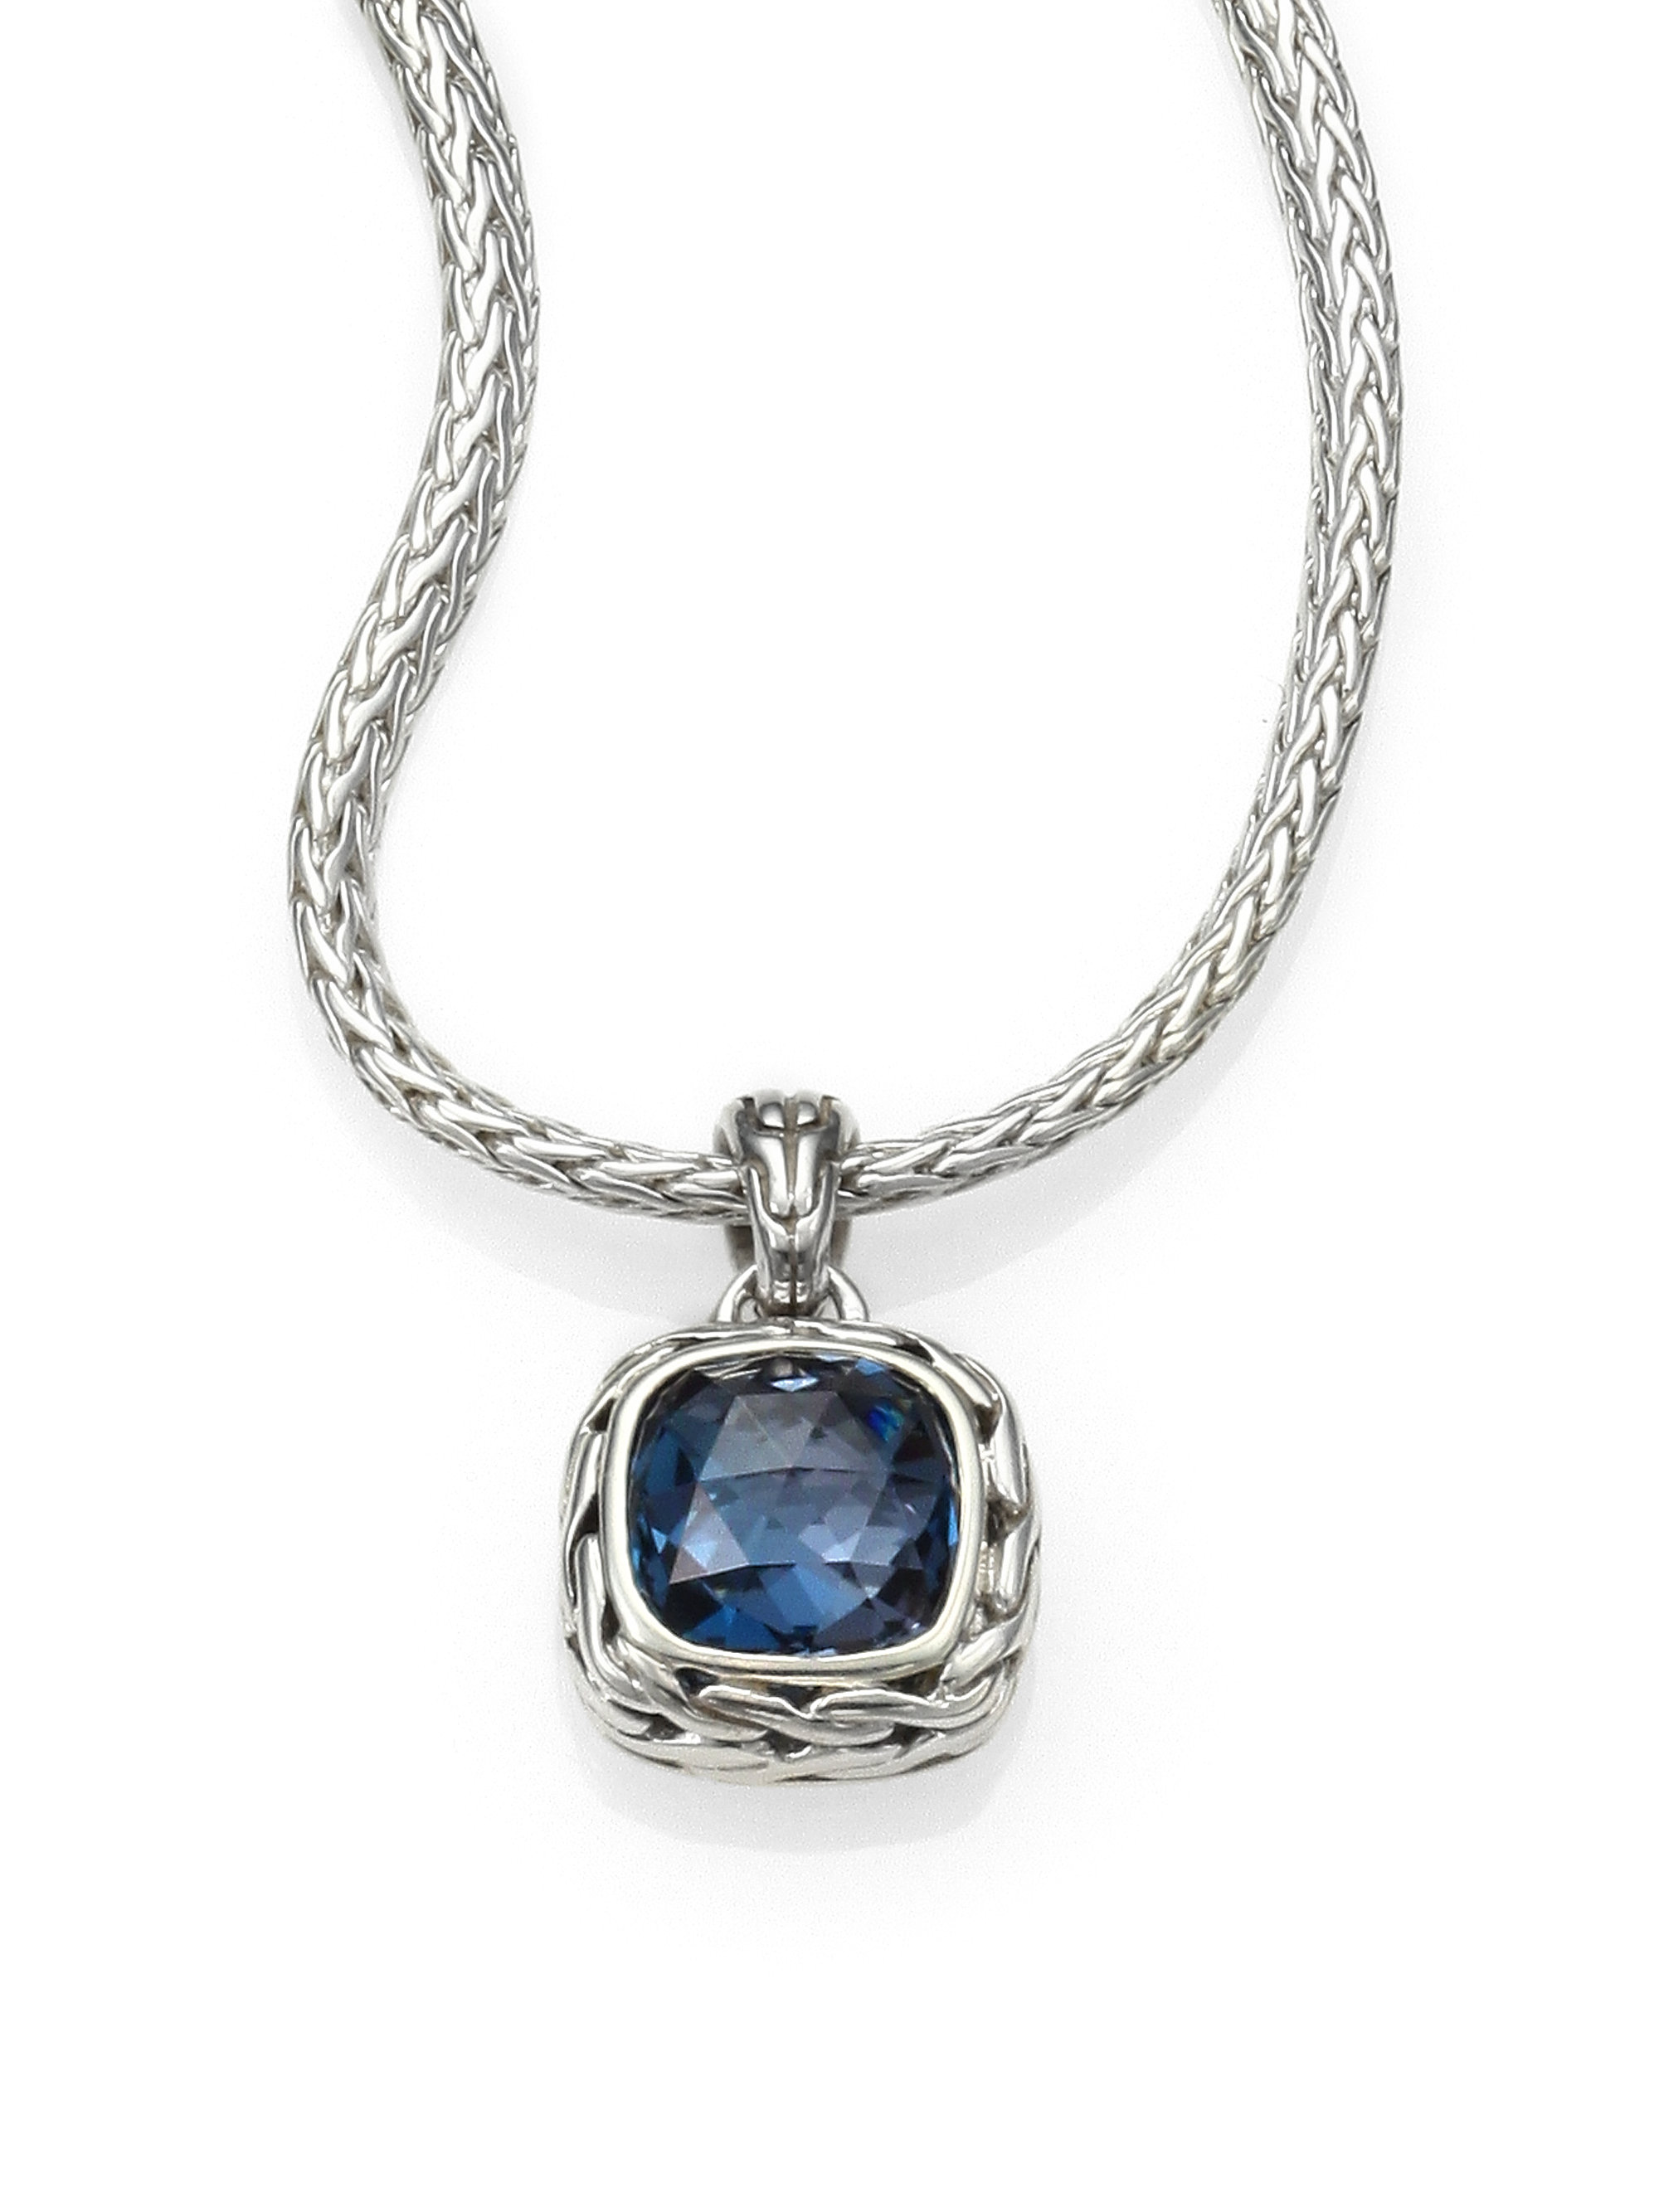 Lyst - John hardy Classic Chain Sterling Silver Small Square Pendant Necklace in Blue - Save 50%